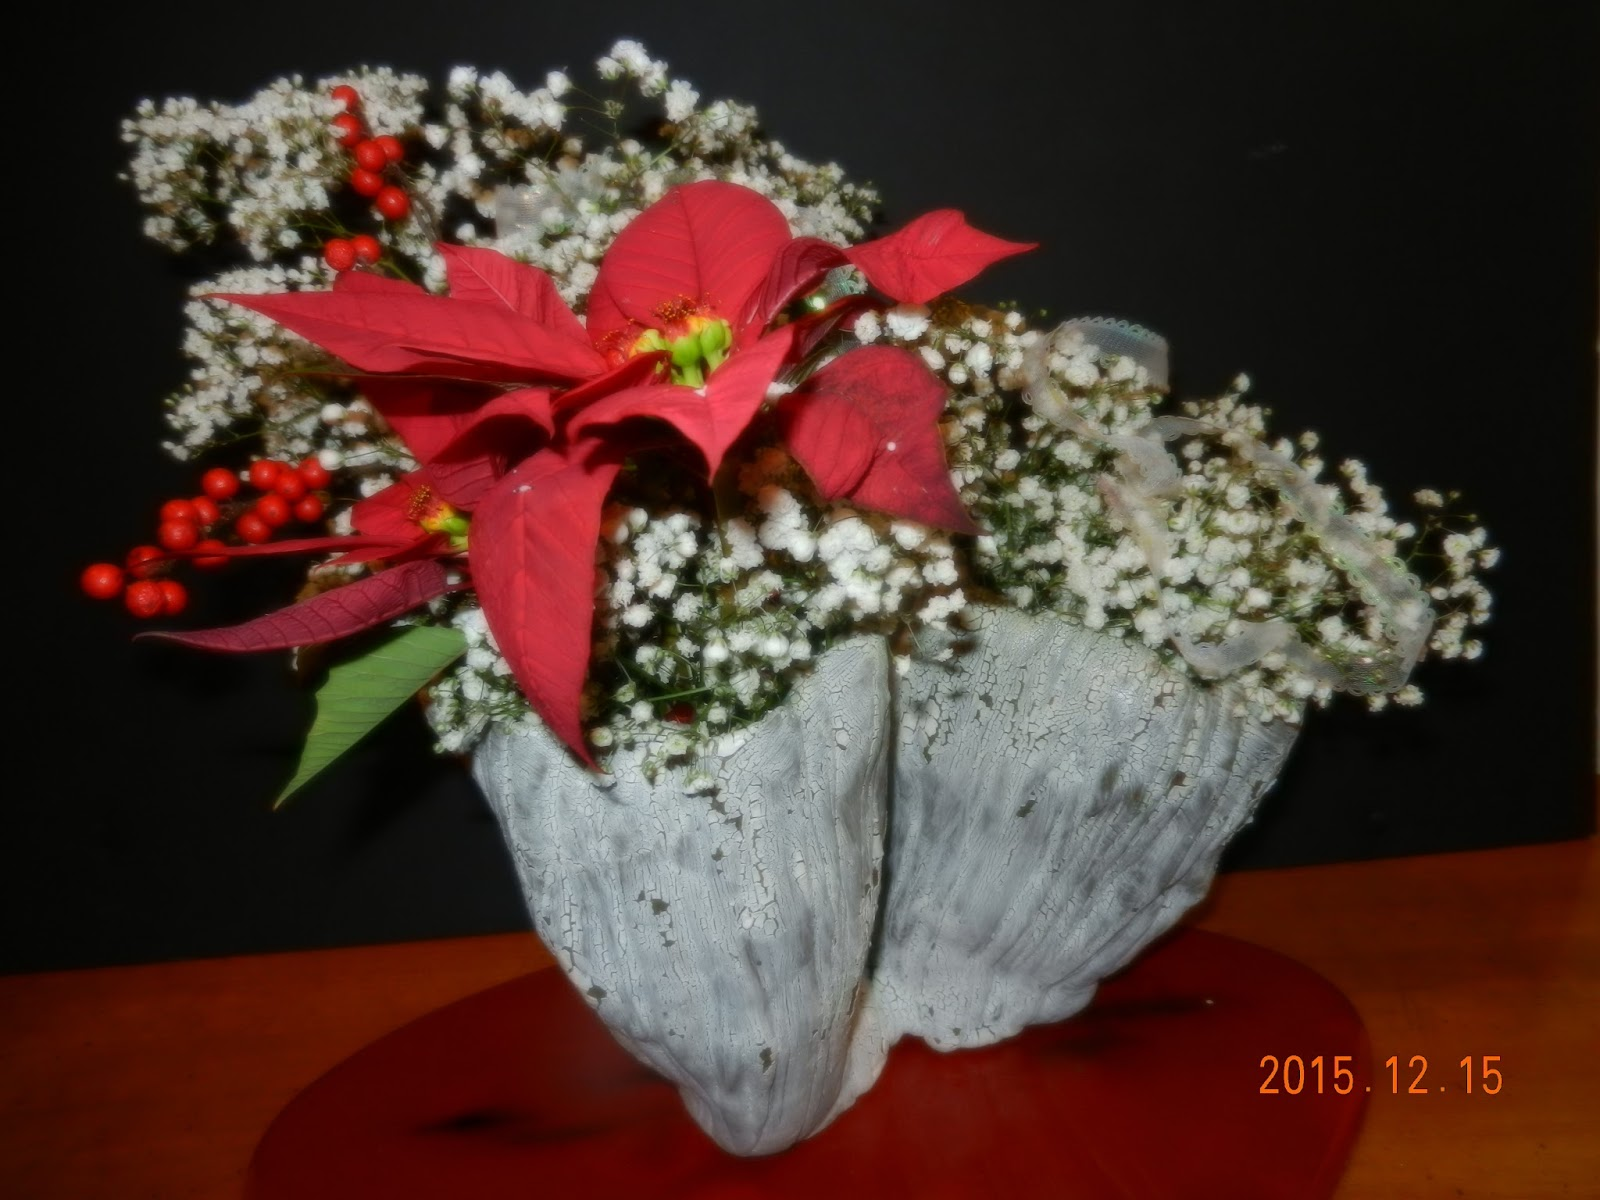 Orchids and ikebana holiday arrangement merry christmas 2 Christmas orchid arrangements